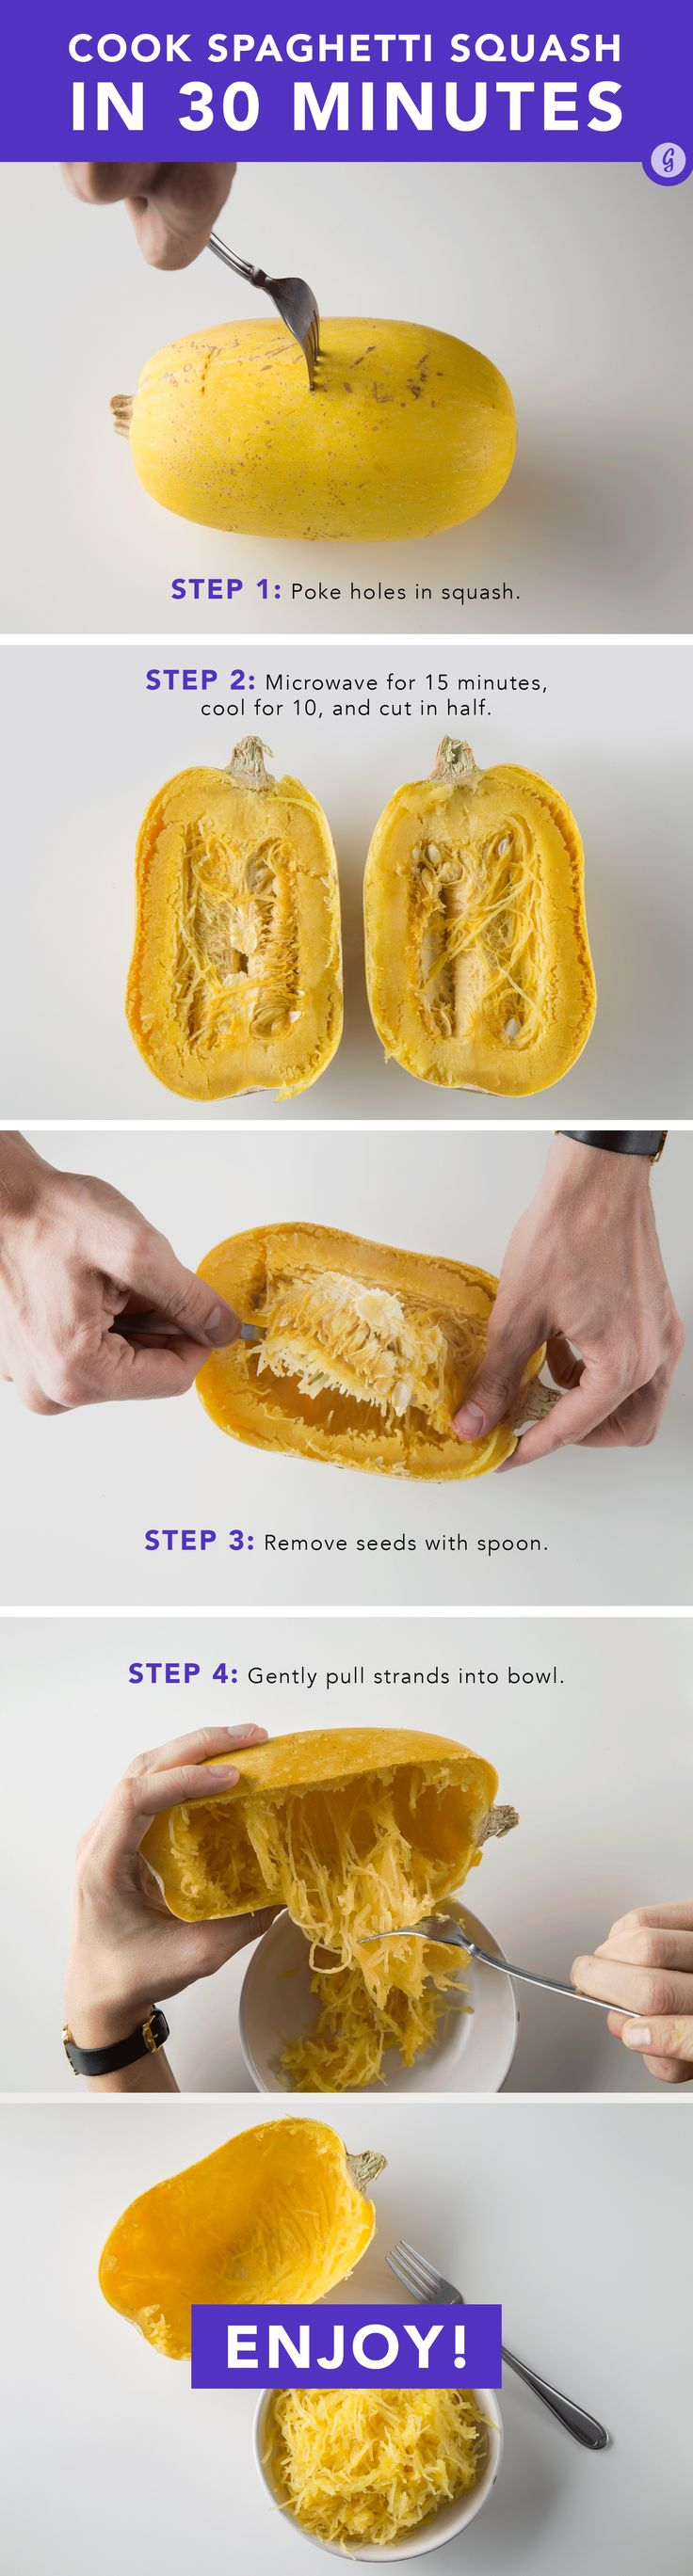 Keep this on hand for when your pasta cravings hit.  #spaghettisquash #stepbystep http://greatist.com/eat/how-to-cook-spaghetti-squash